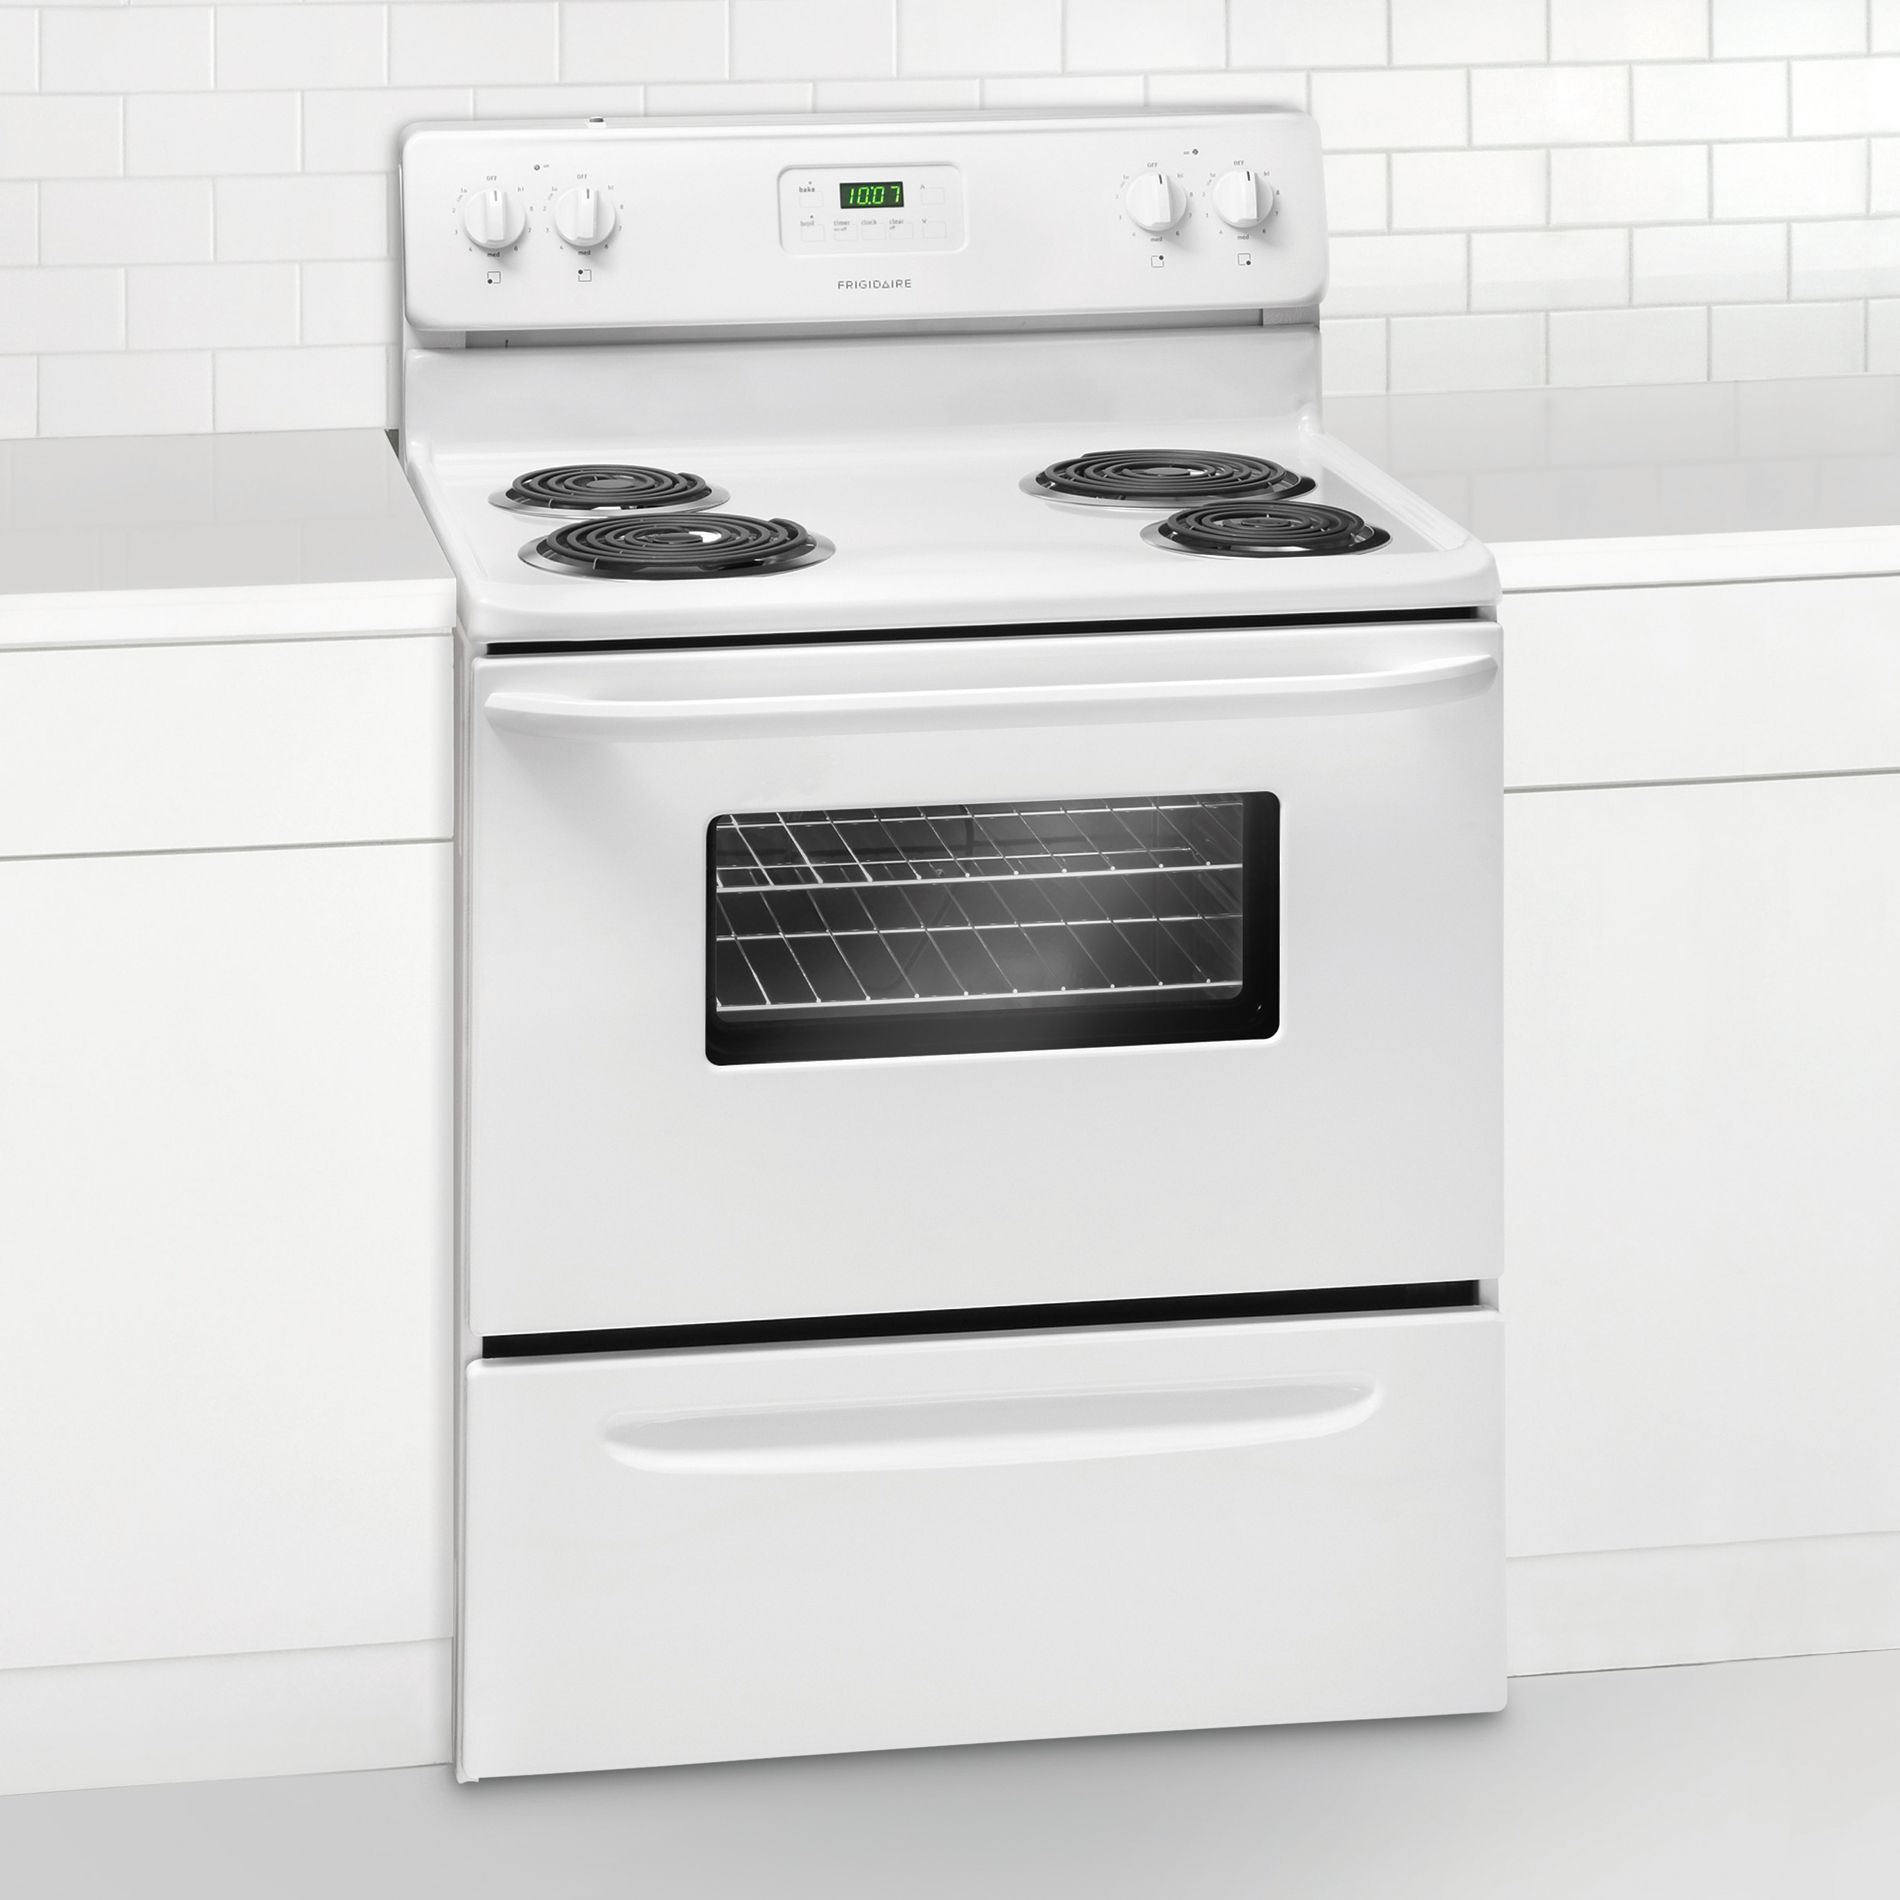 Frigidaire FFEF3011LW 4.8 cu. ft. Electric Range - White